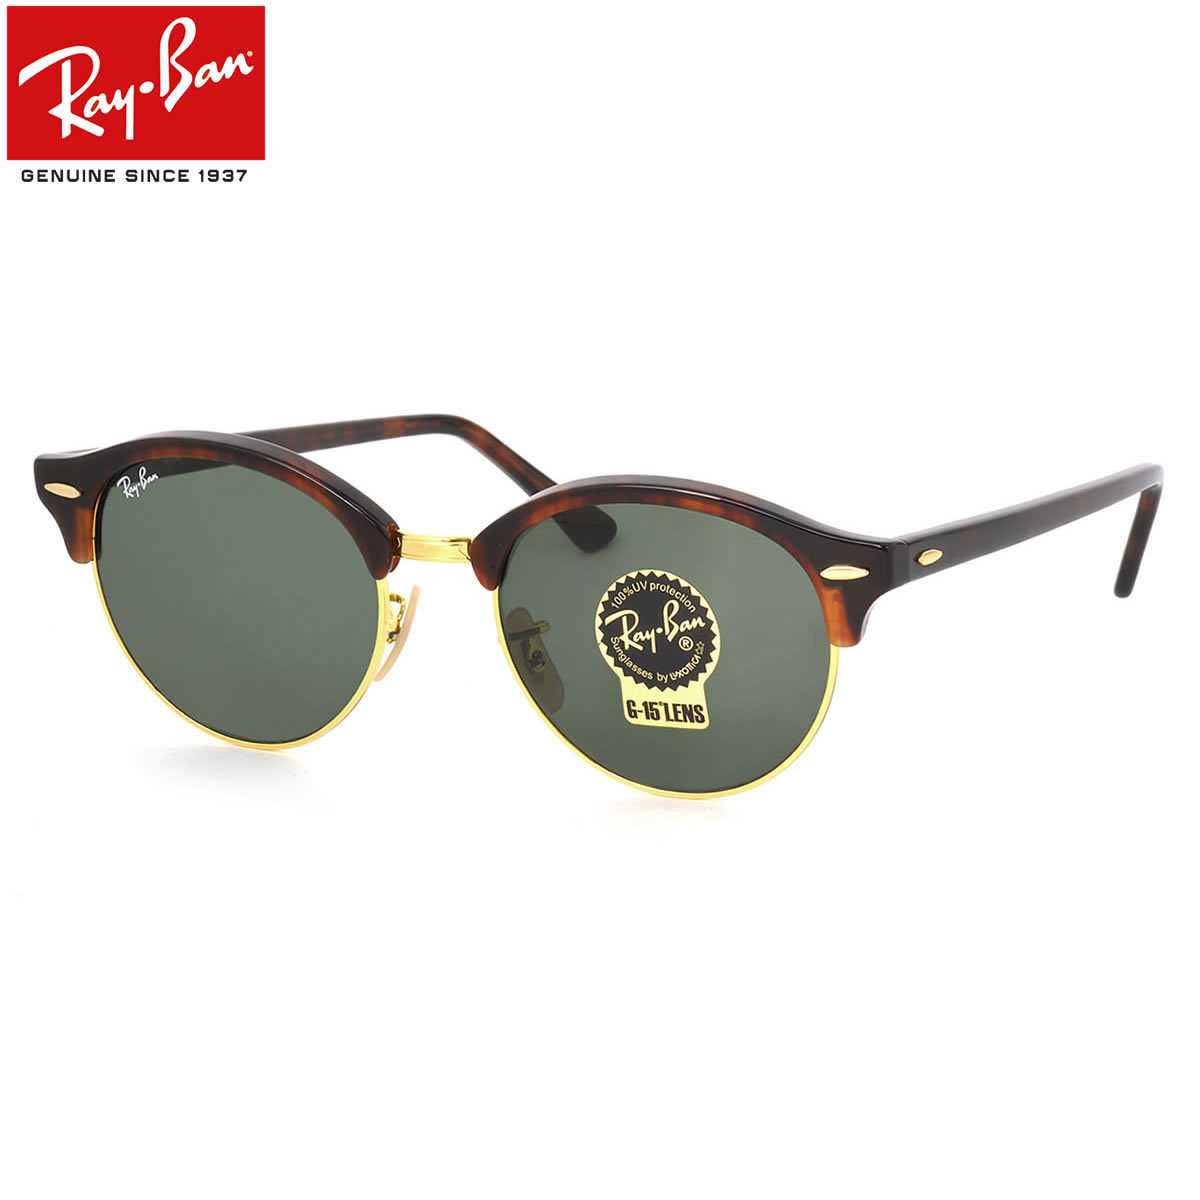 2d763a2a21 New icons CLUBROUND (clubround) was born from the ray-ban. It is a unique  model that mixes popular CLUBMASTER (Club master) and ROUND (round).